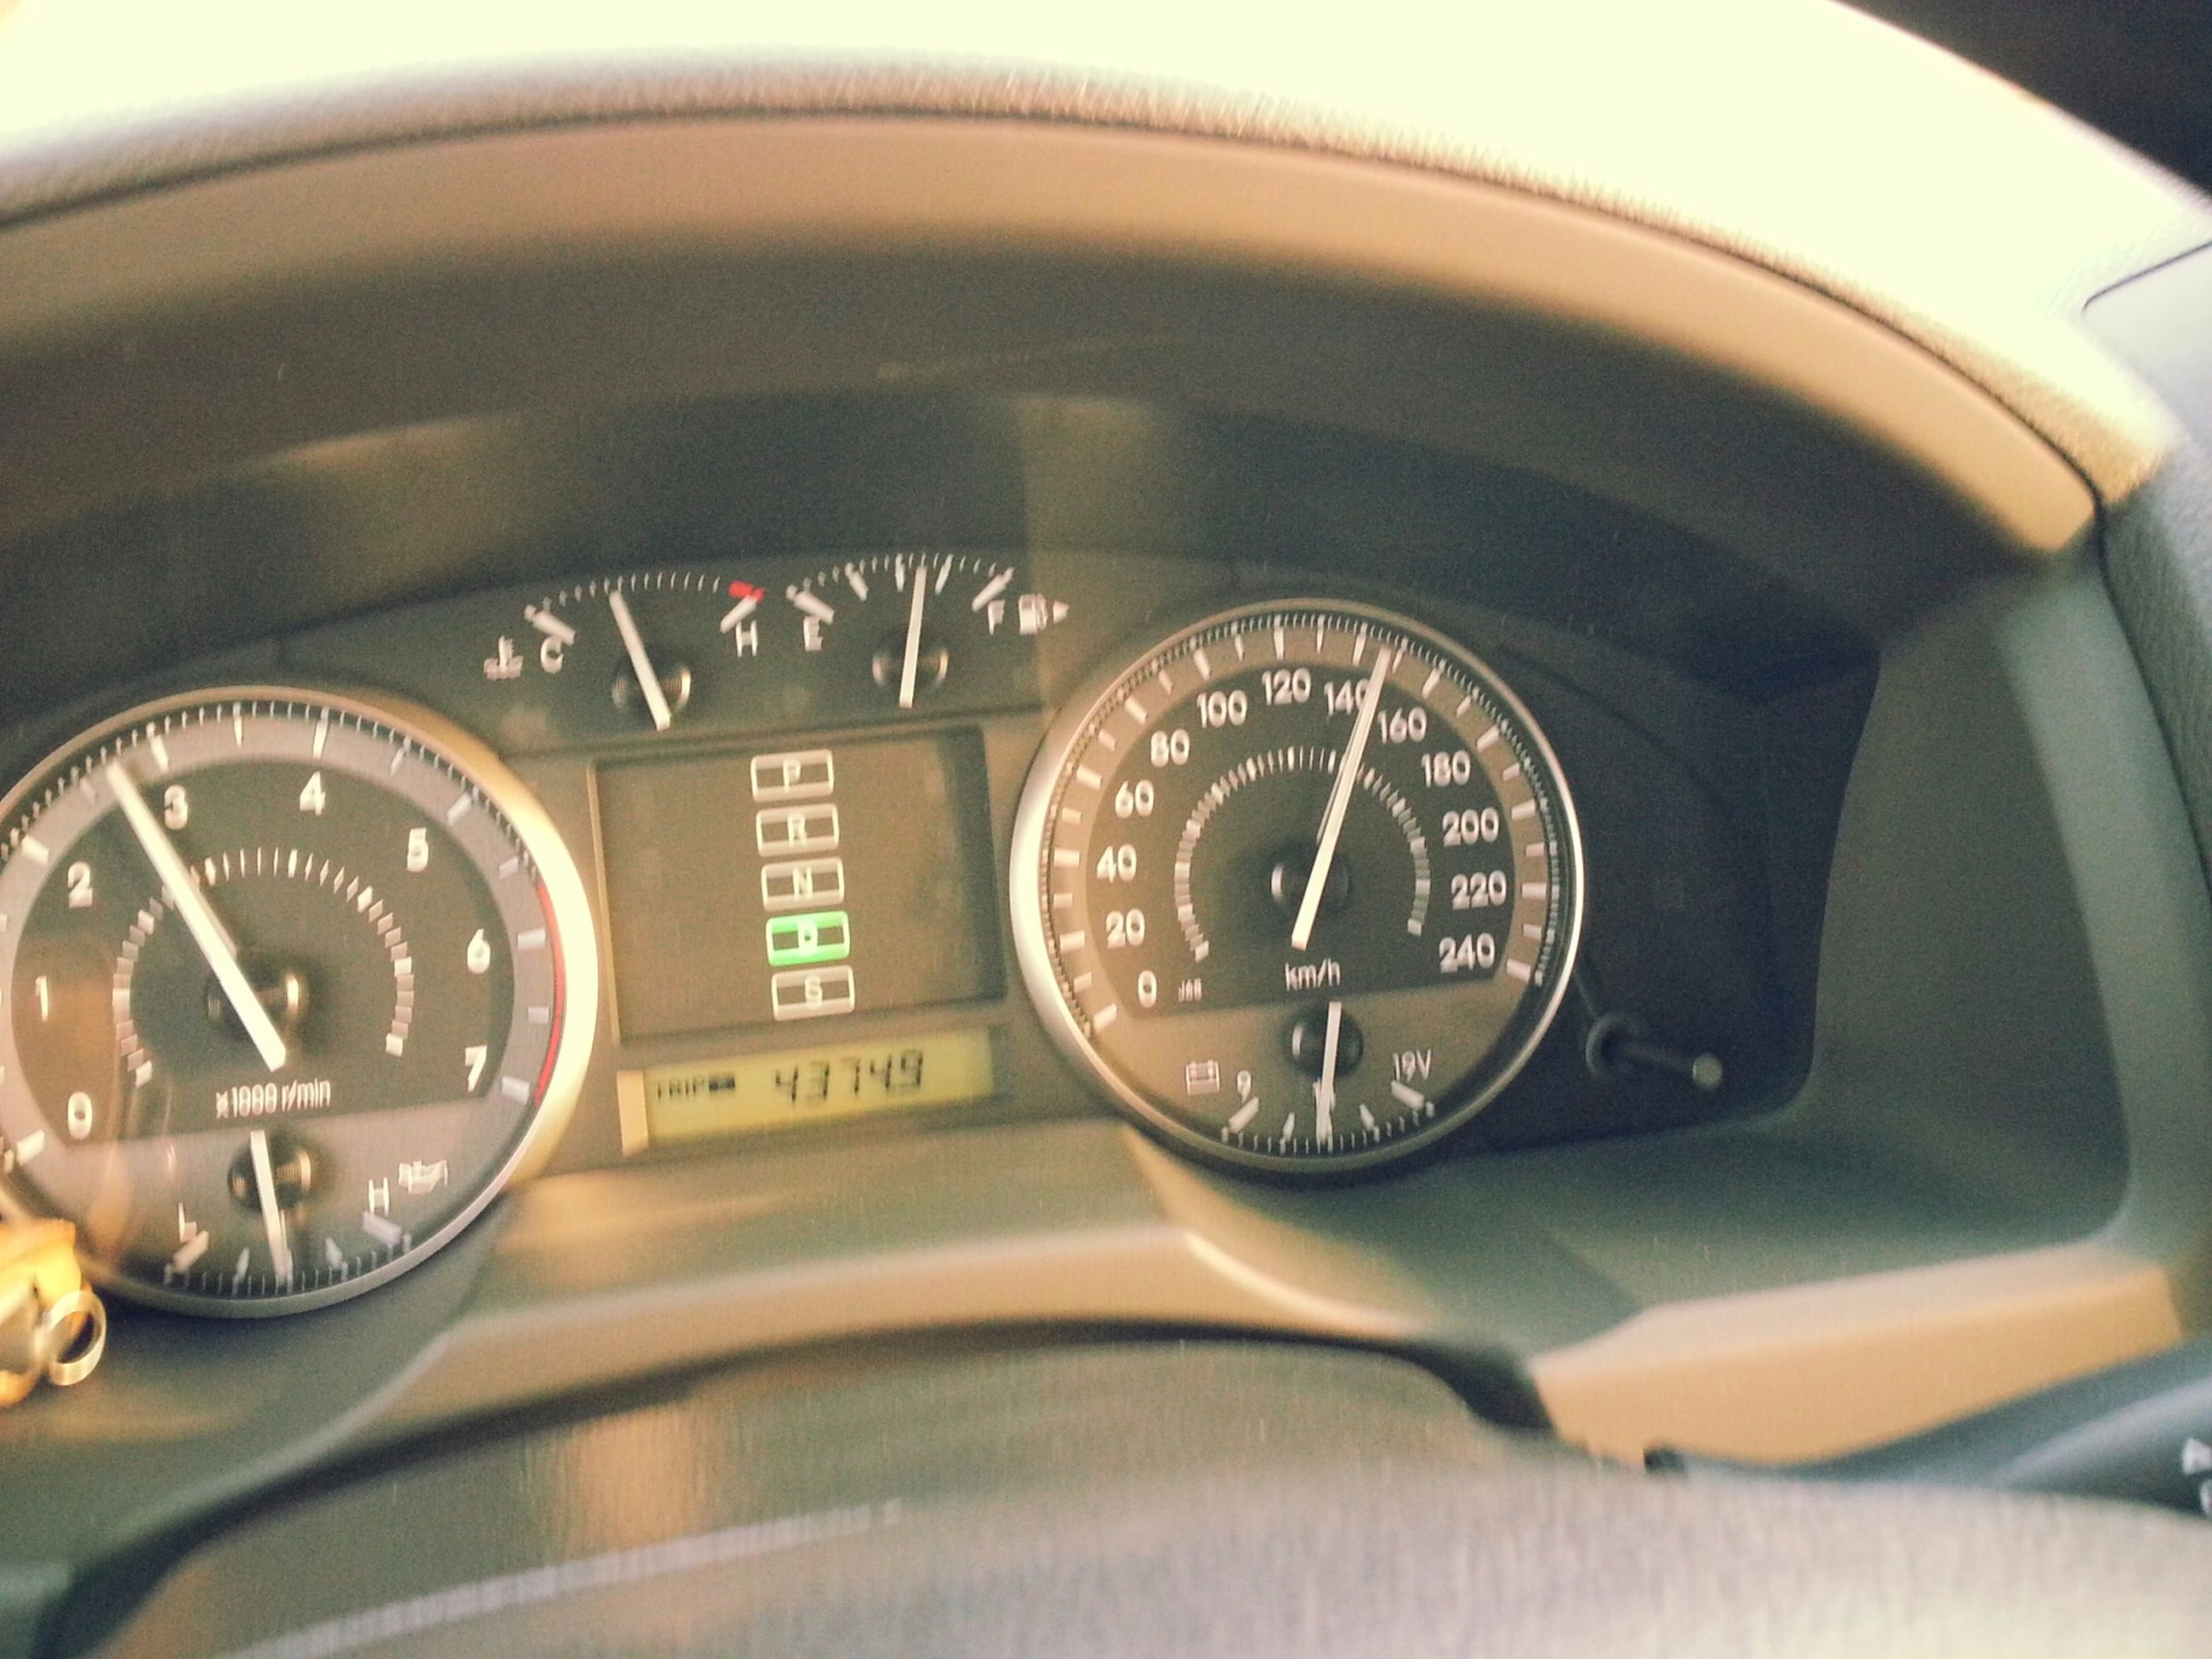 indoors, transportation, mode of transport, land vehicle, car, close-up, reflection, communication, vehicle interior, text, car interior, technology, number, selective focus, retro styled, travel, part of, old-fashioned, speedometer, no people